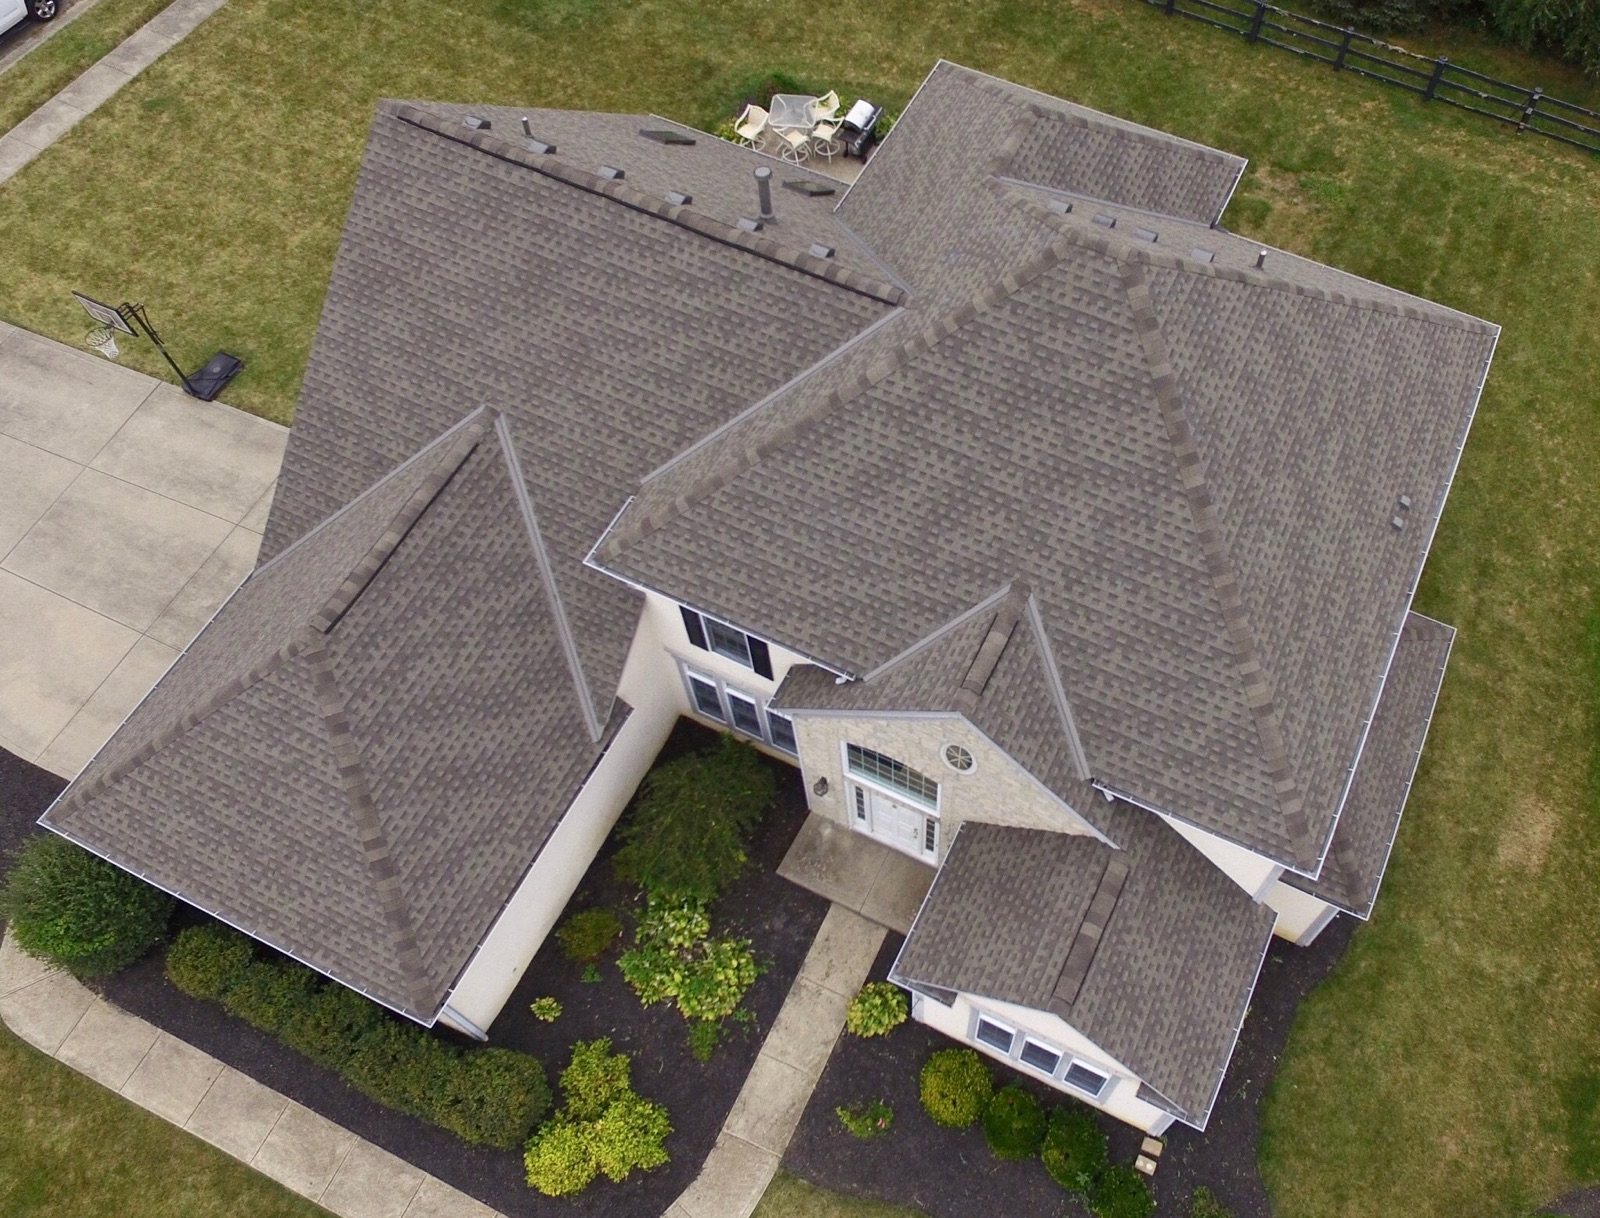 Marvelous Benchmark Roofers Of Columbus Ohio Can Handle Any Residential Or Commercial  Improvement Project. We Have More Than 50 Years Of Combined Roofing, ...